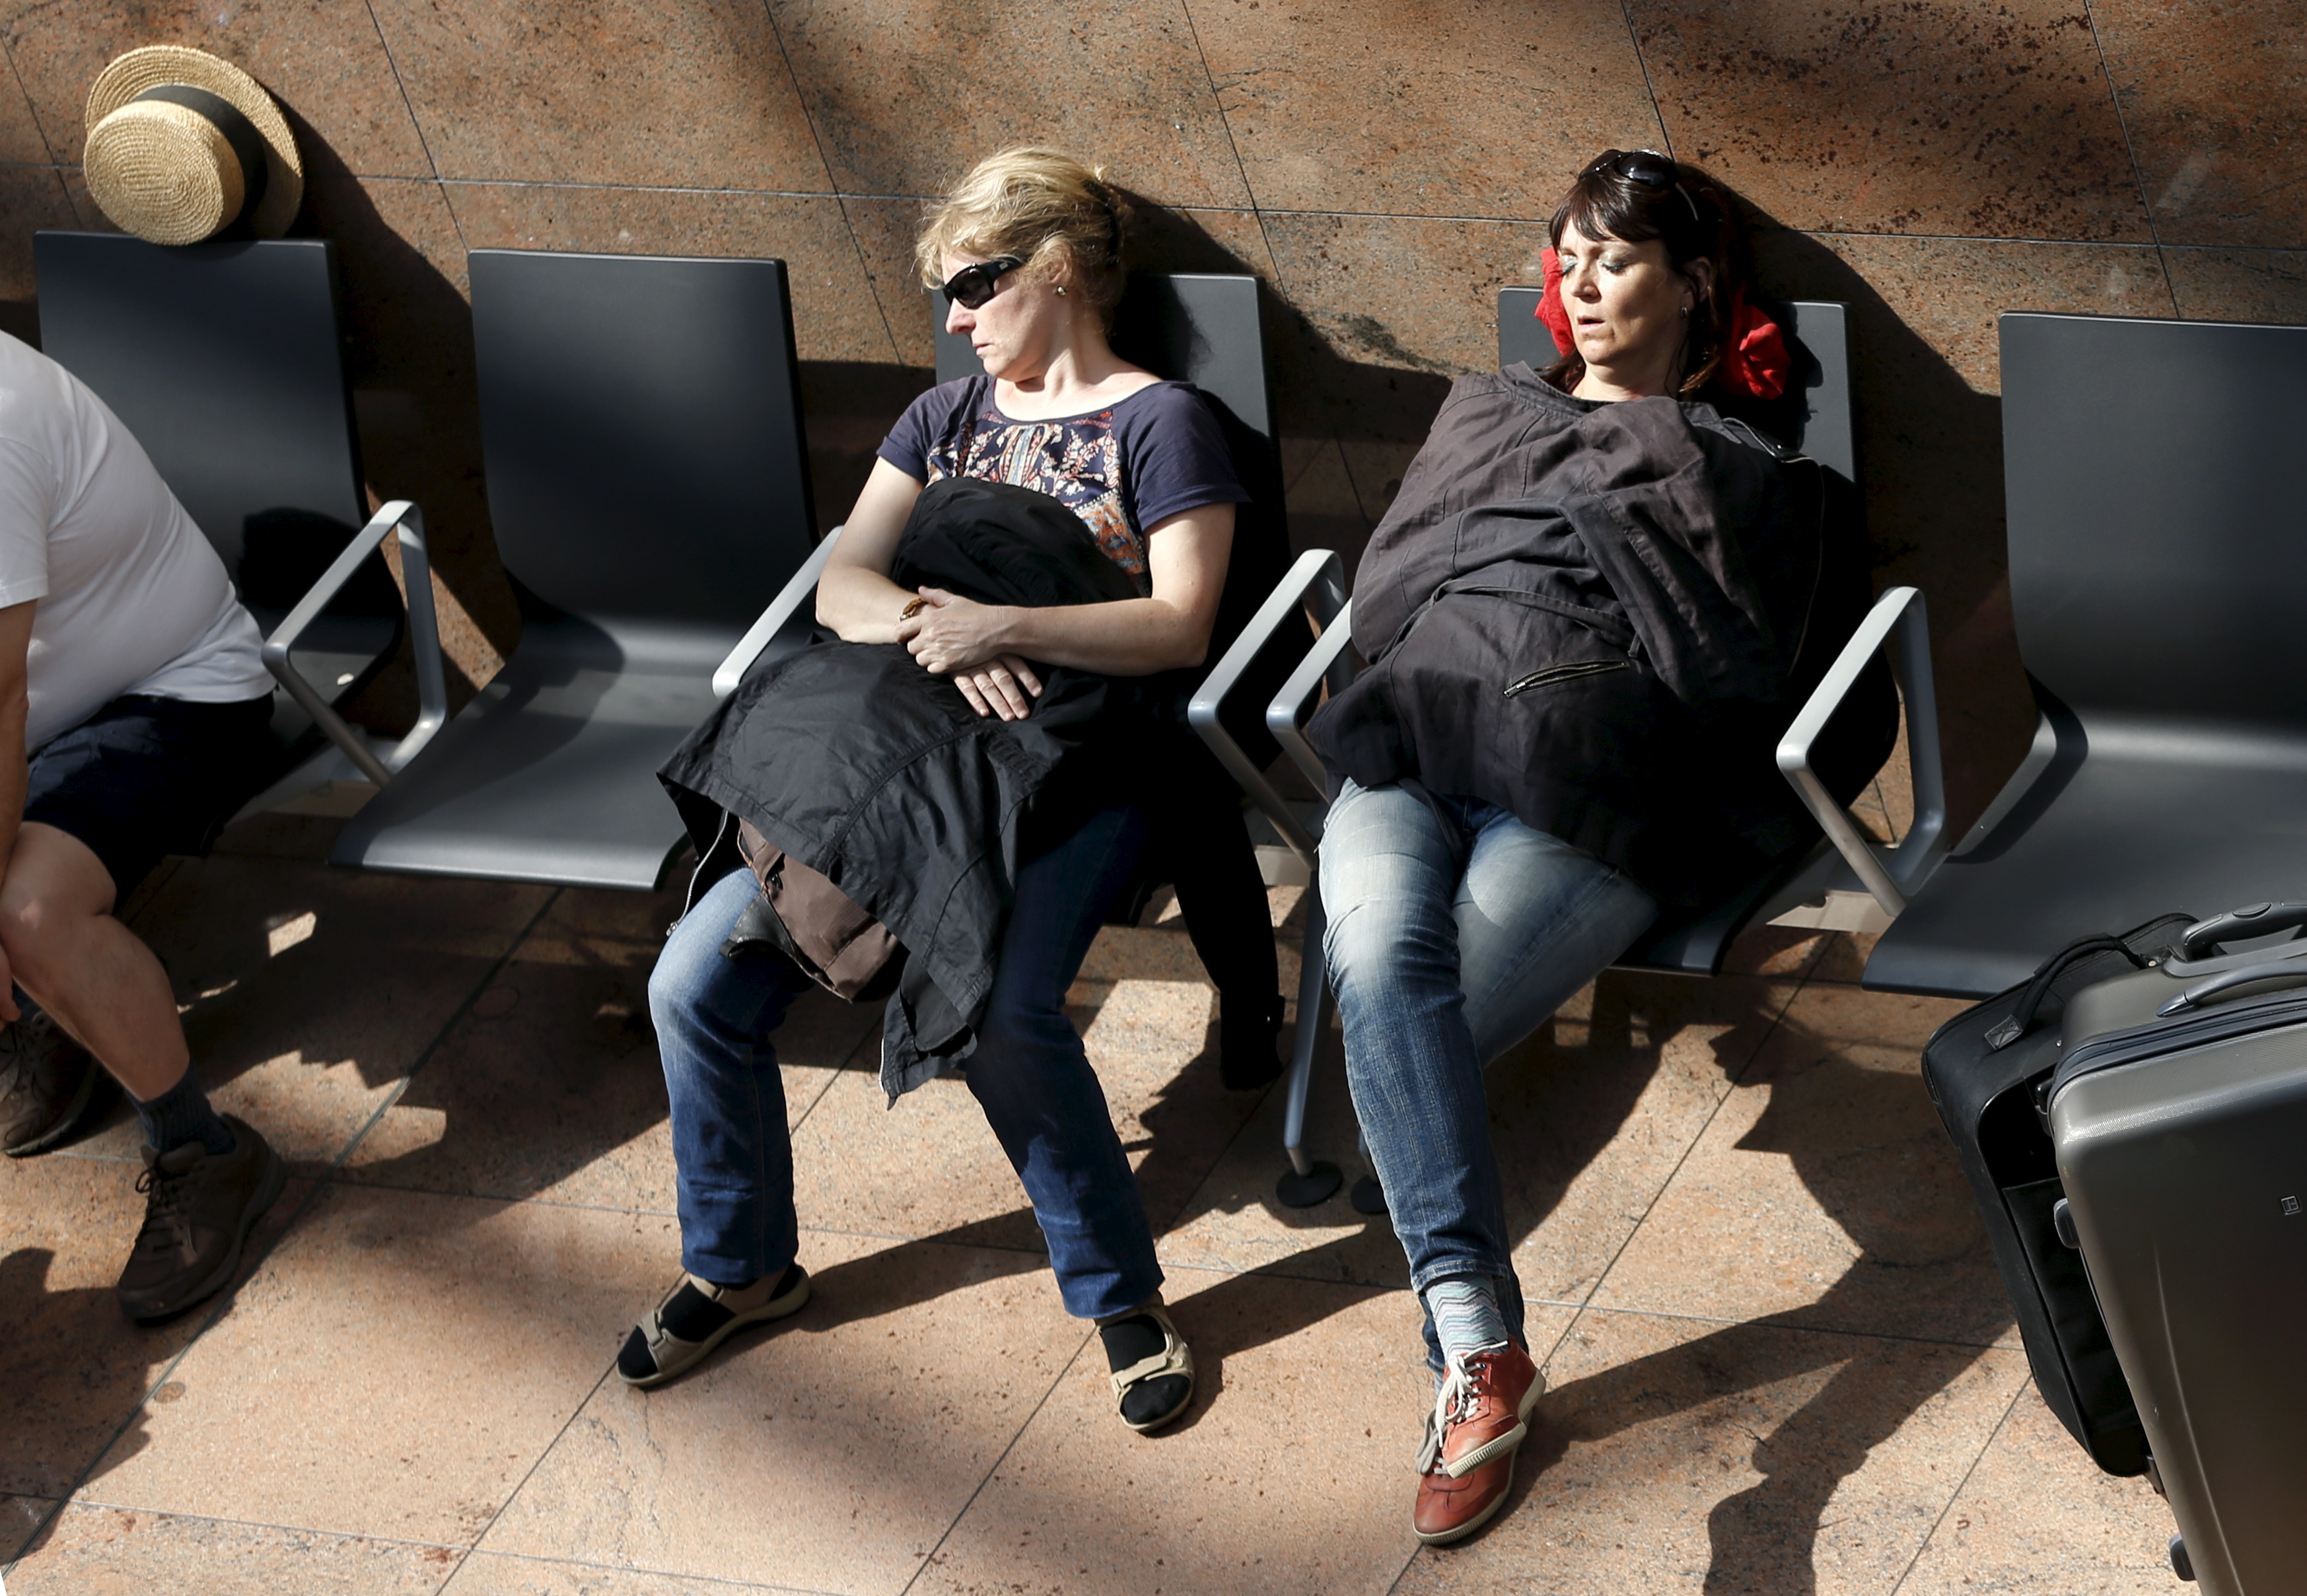 Stranded passengers sleep at Zaventem international airport near Brussels